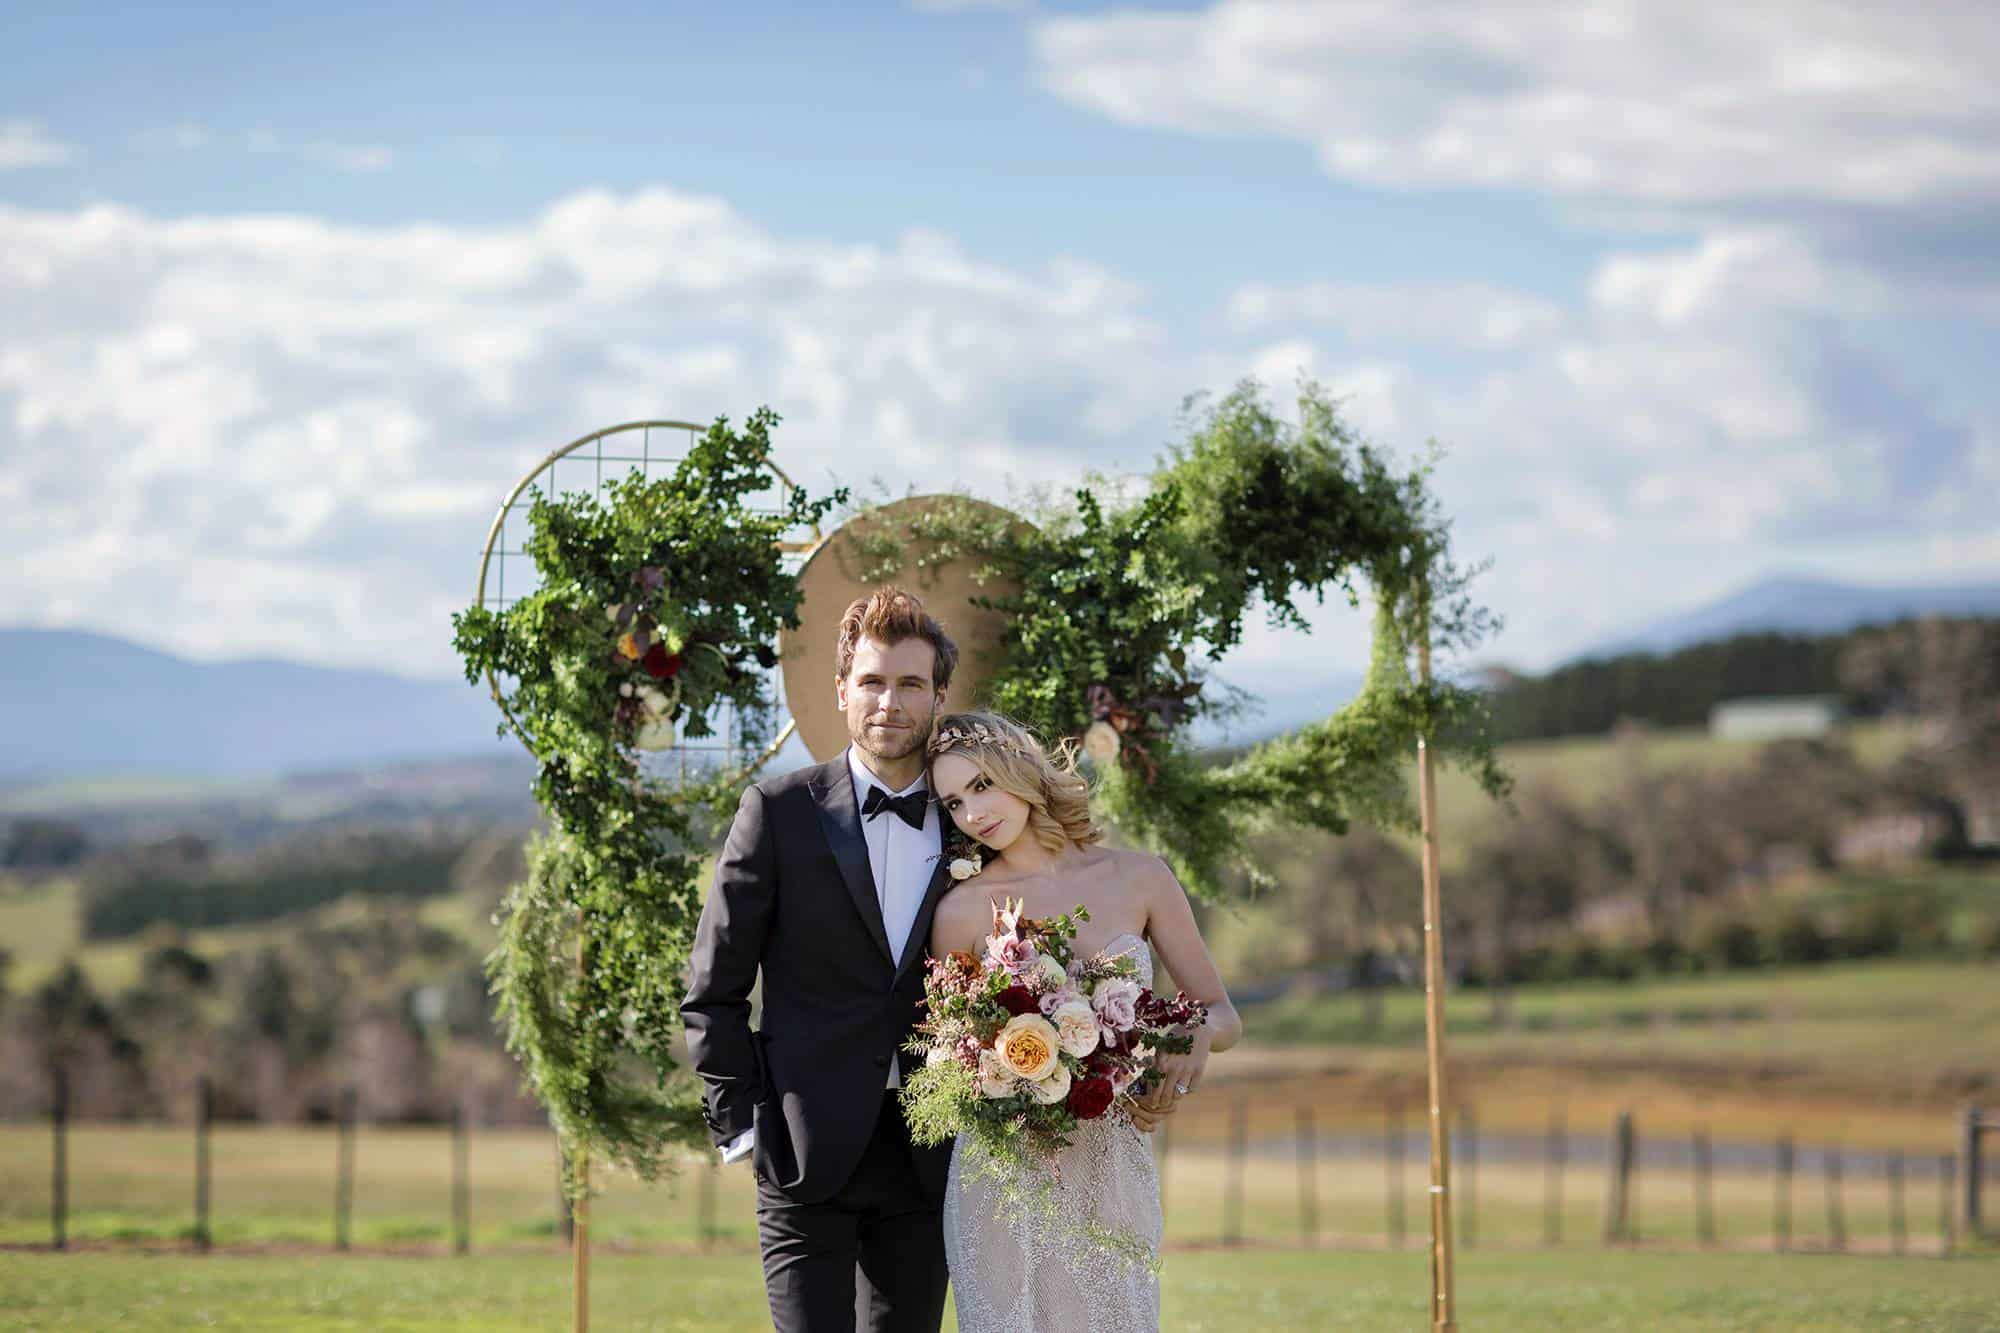 Top rated Wedding venue in Yarra Valley